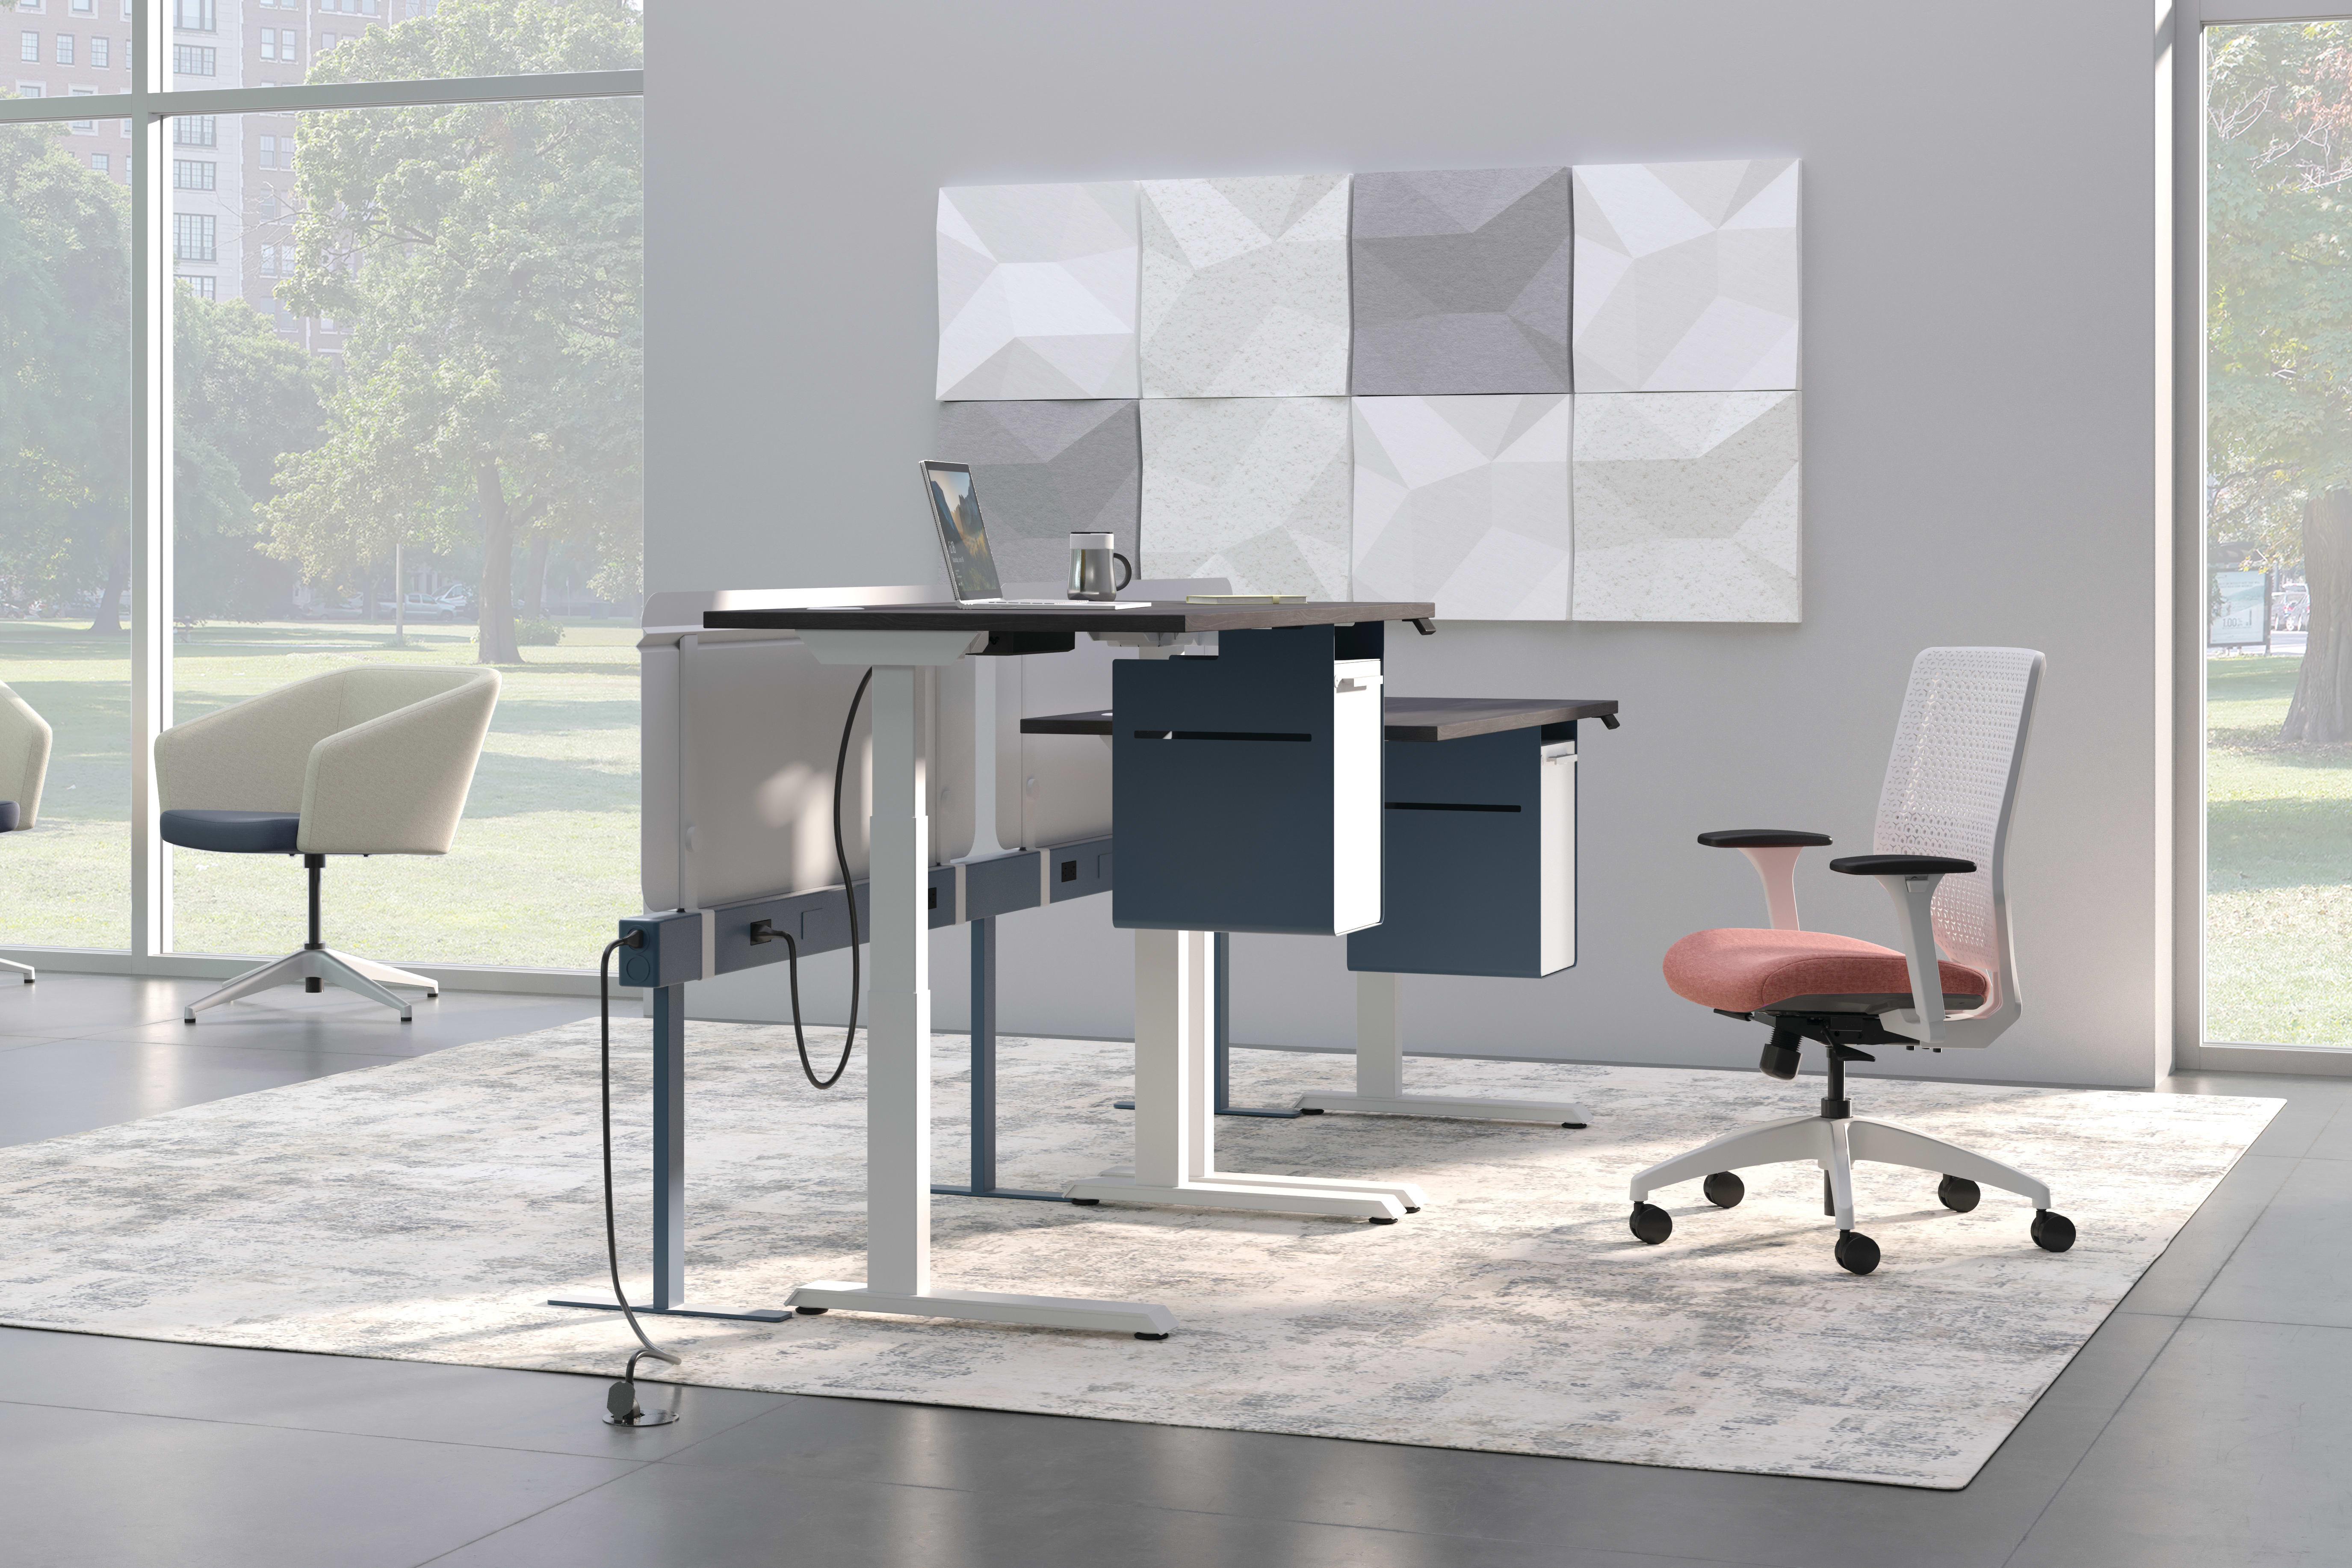 Solve Chair with Coordinate Height Adjustable Table, Gravitation Beam and Flock Chairs.